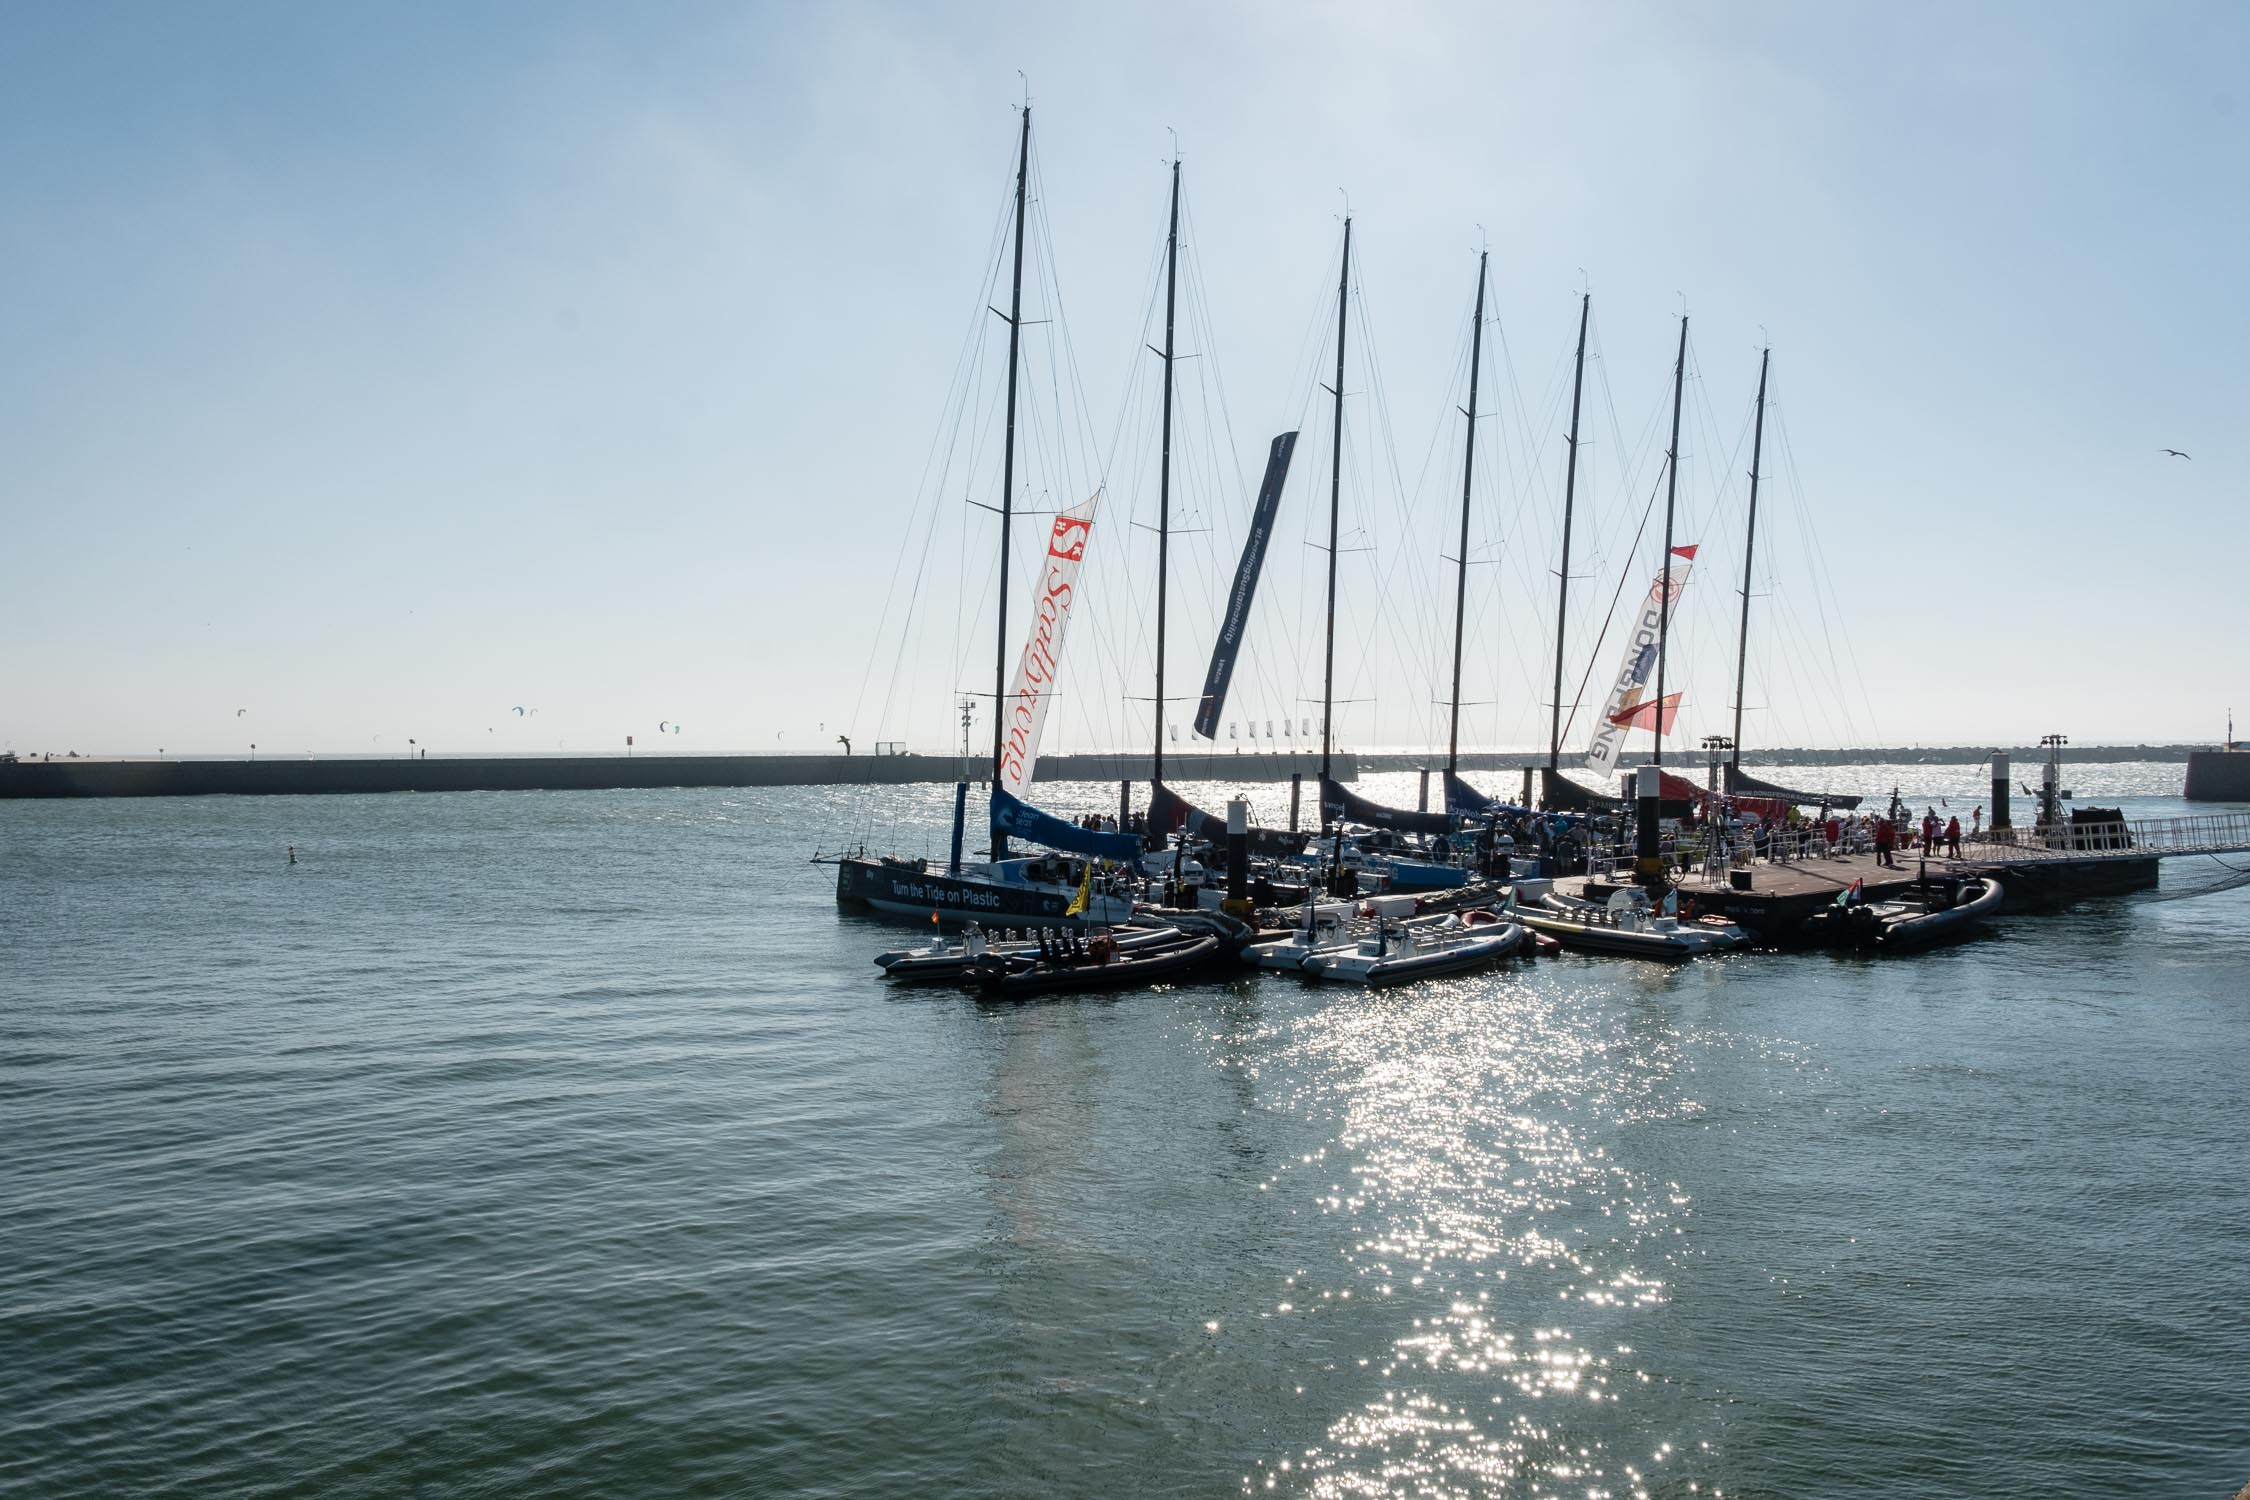 Geheimtipp Den Haag Volvo Ocean race the legends